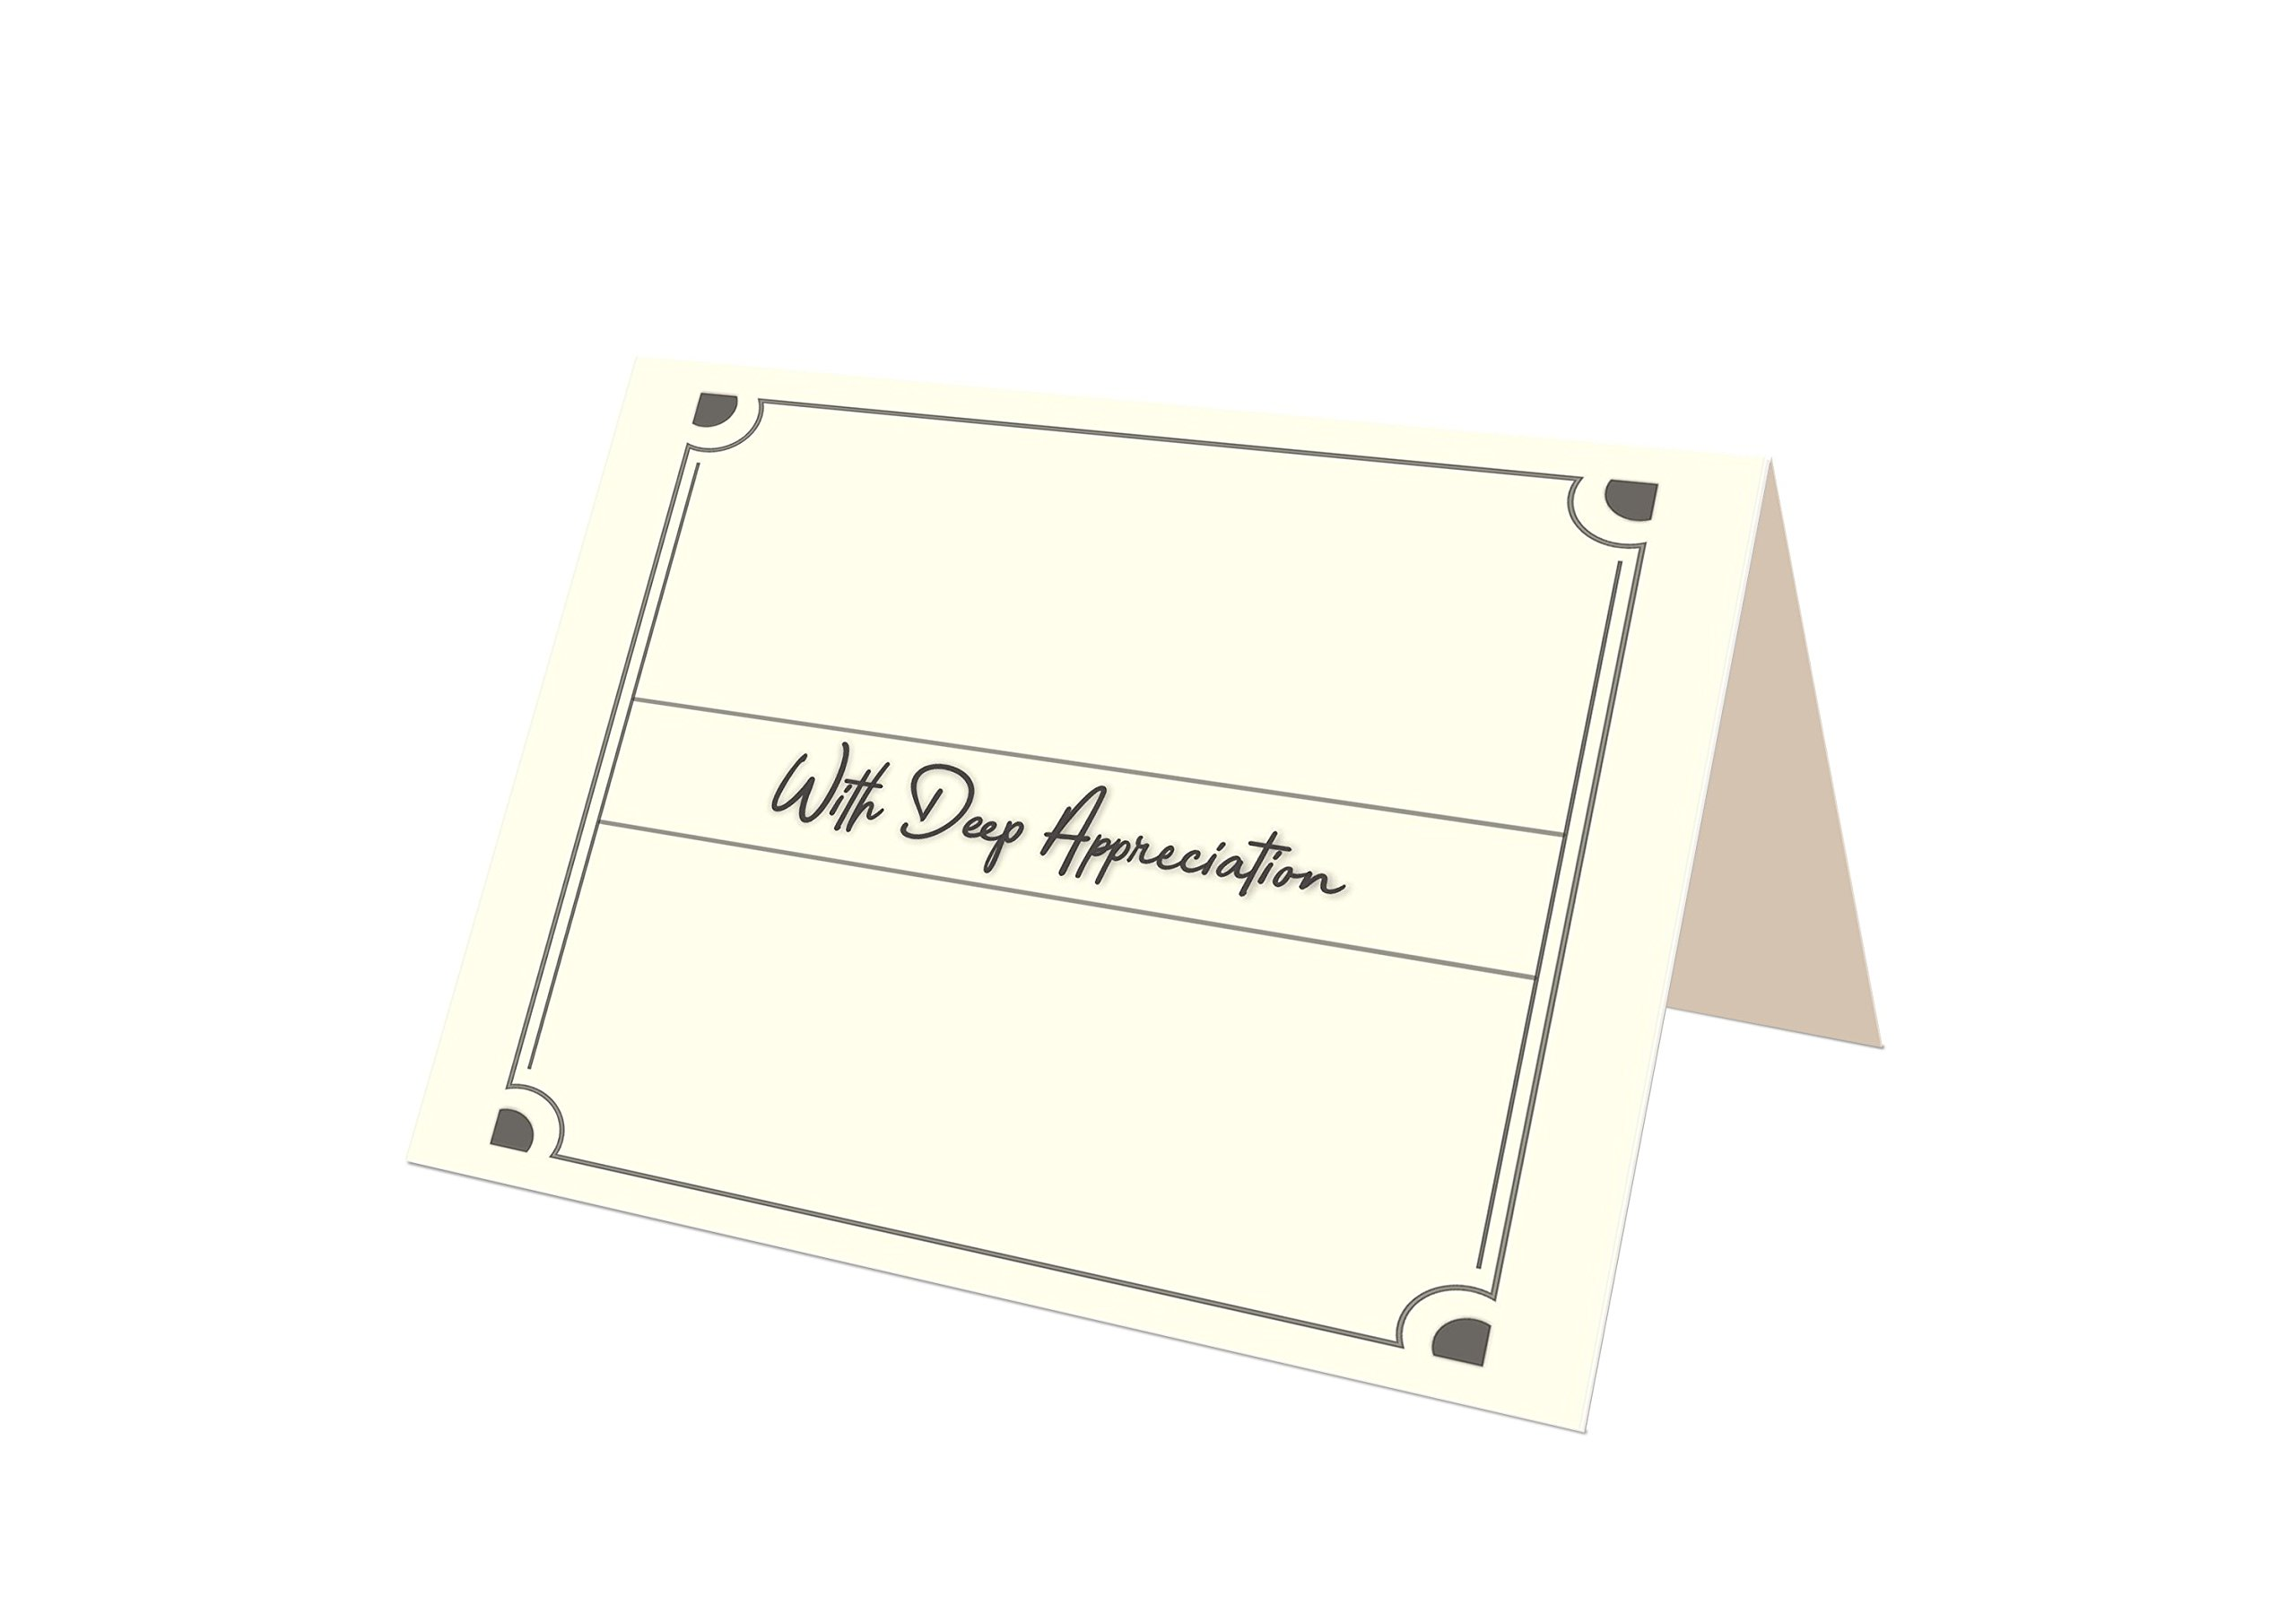 Funeral Memorial Service Thank You Cards & Envelopes (25 Count) (White - Preprinted)